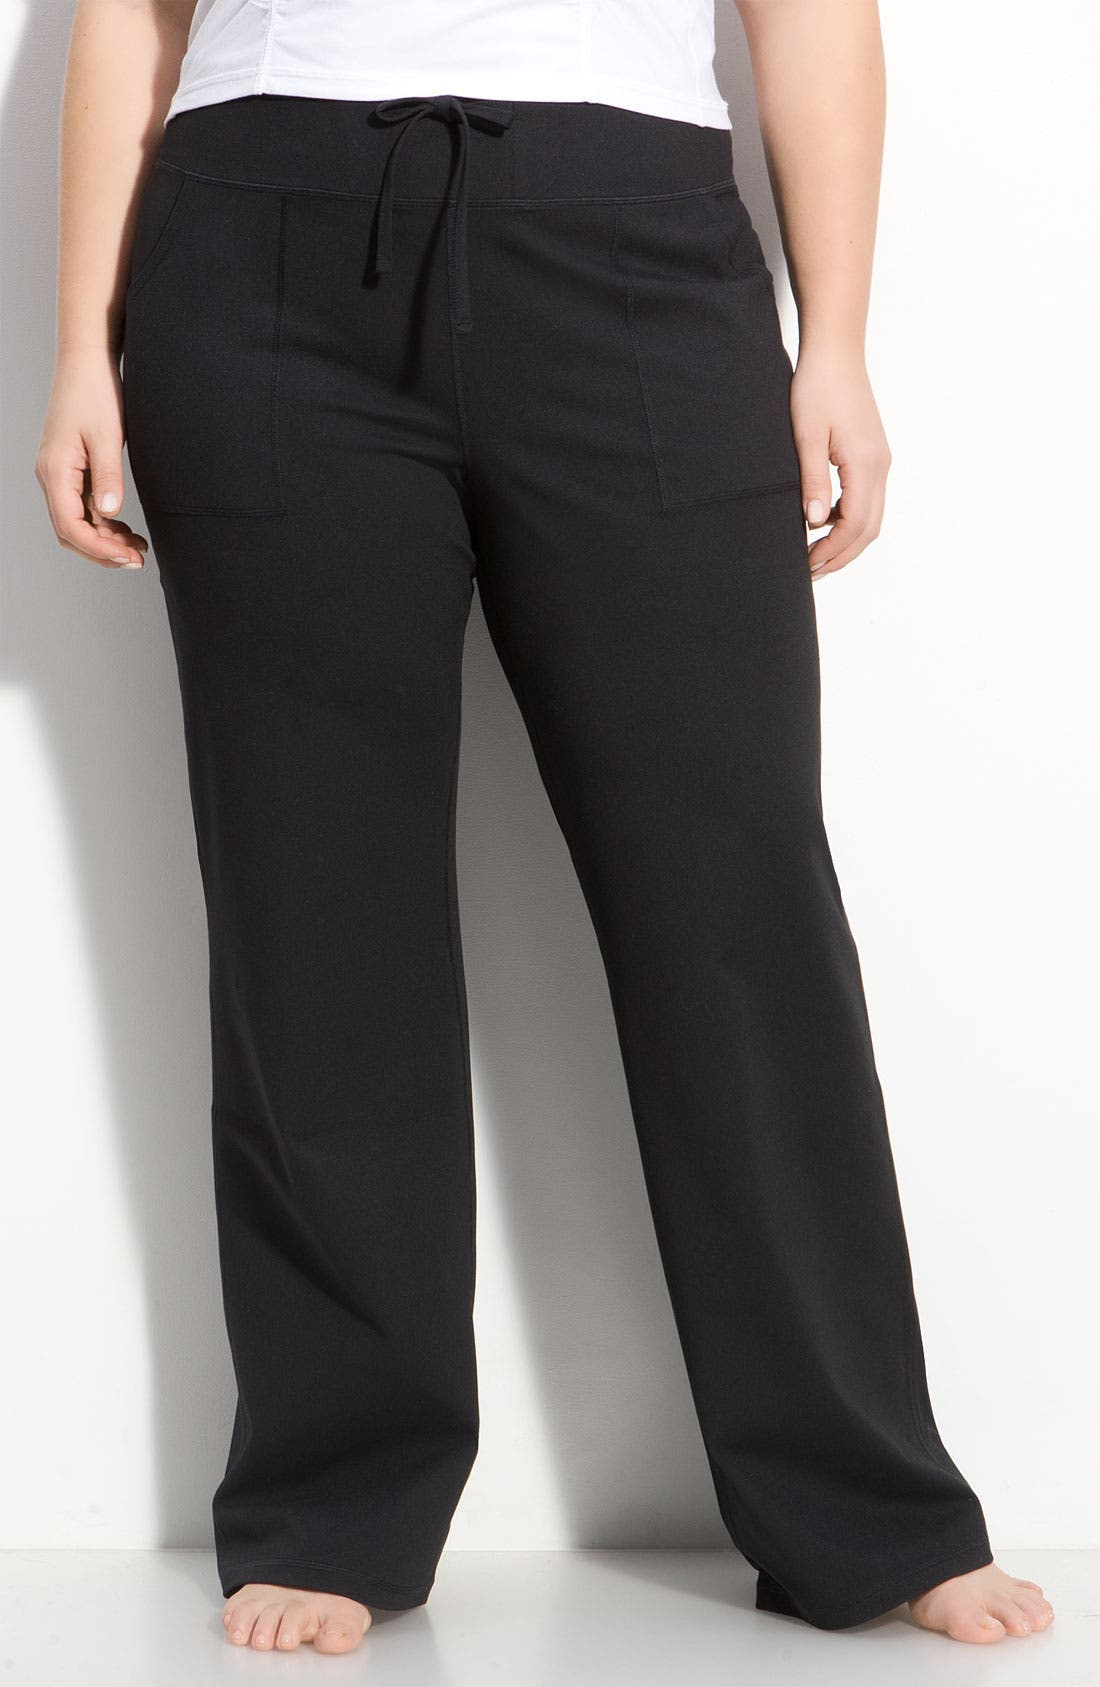 Main Image - Zella 'Soul' Wide Leg Pants (Plus)